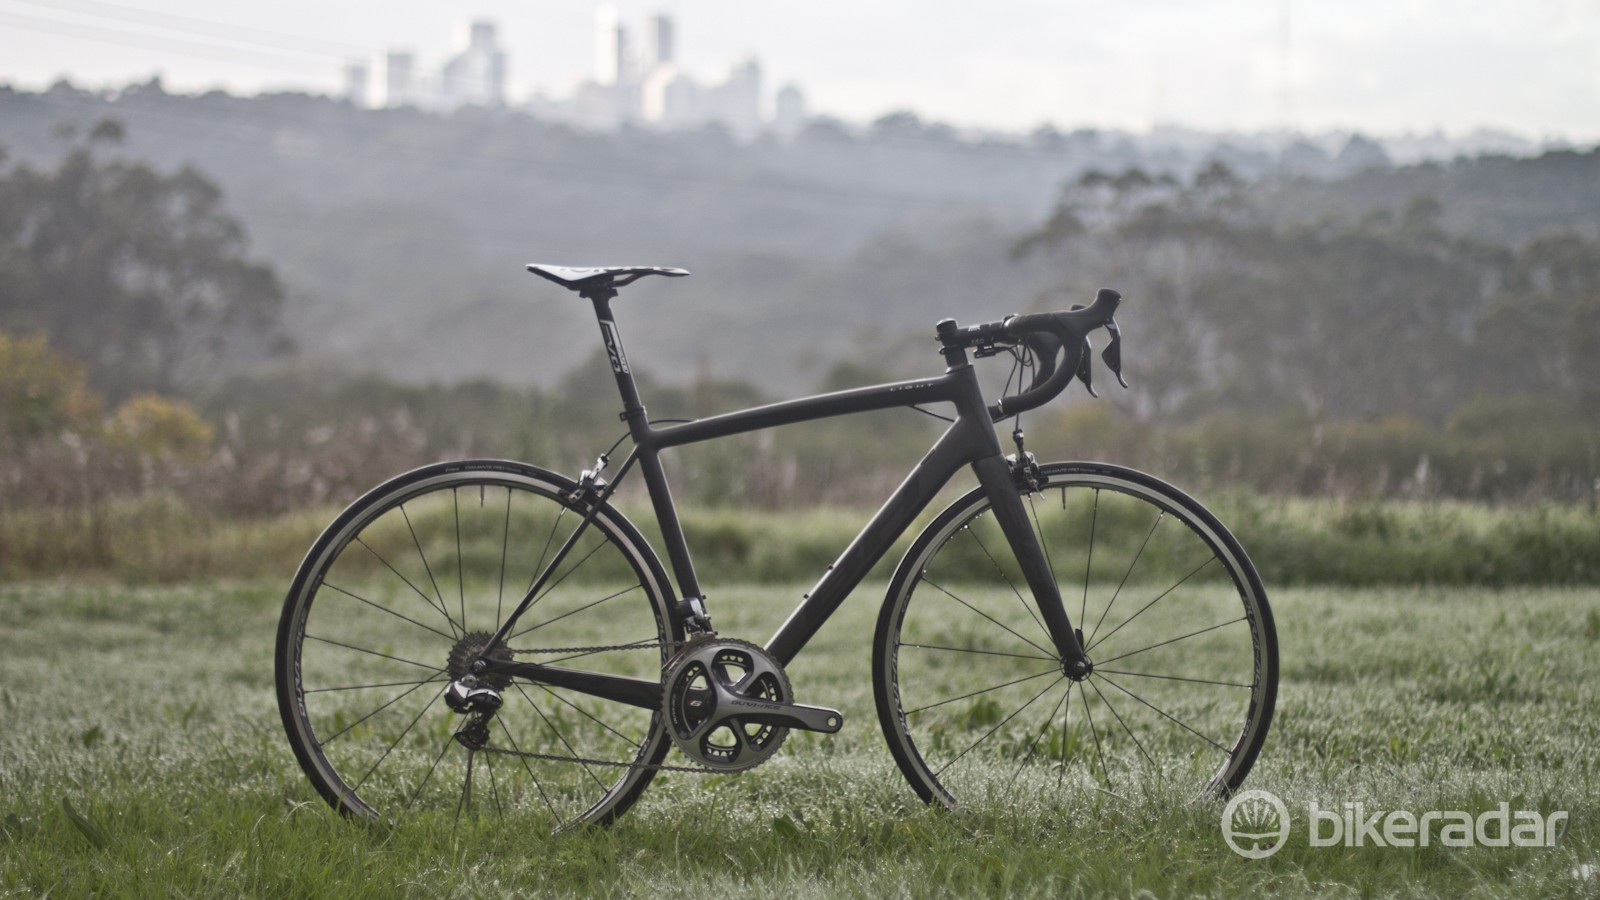 The BH Ultralight is appropriately named